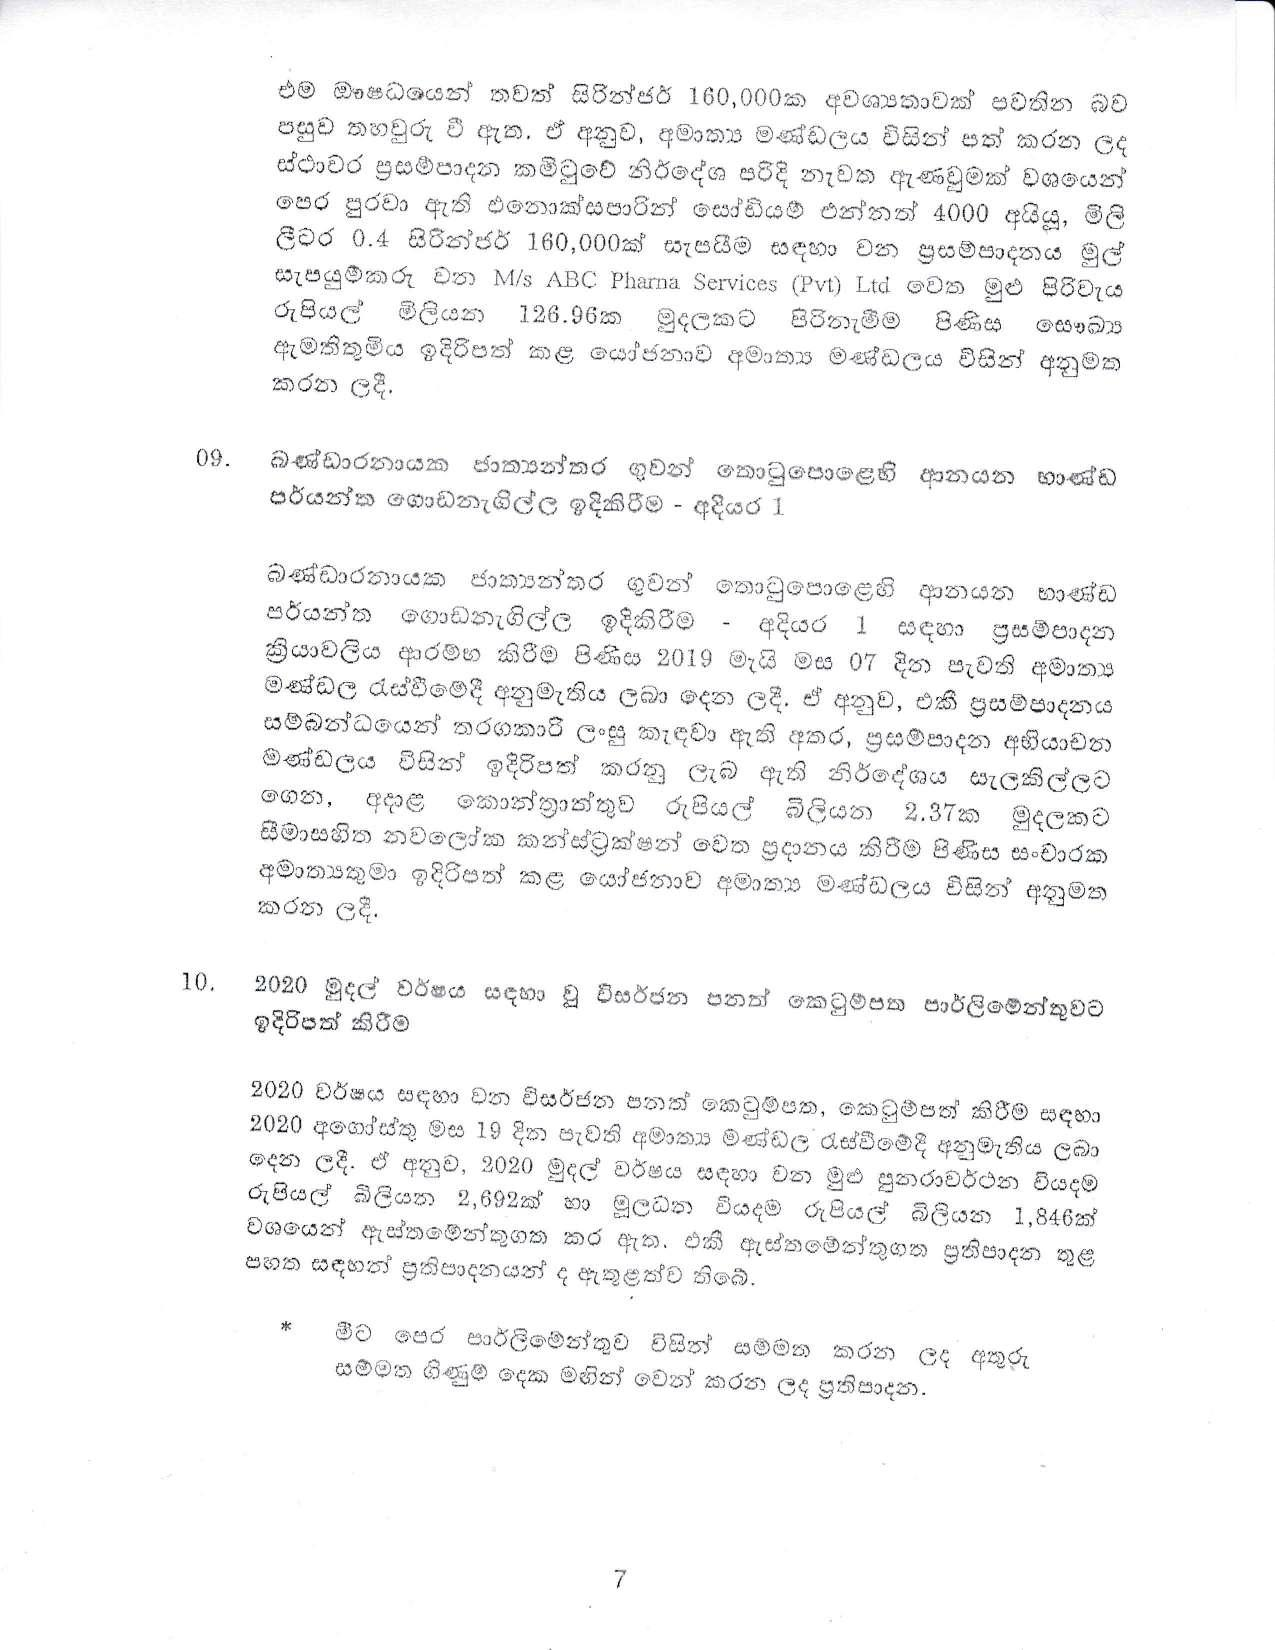 Cabinet Decision on 05.10.2020 compressed page 007